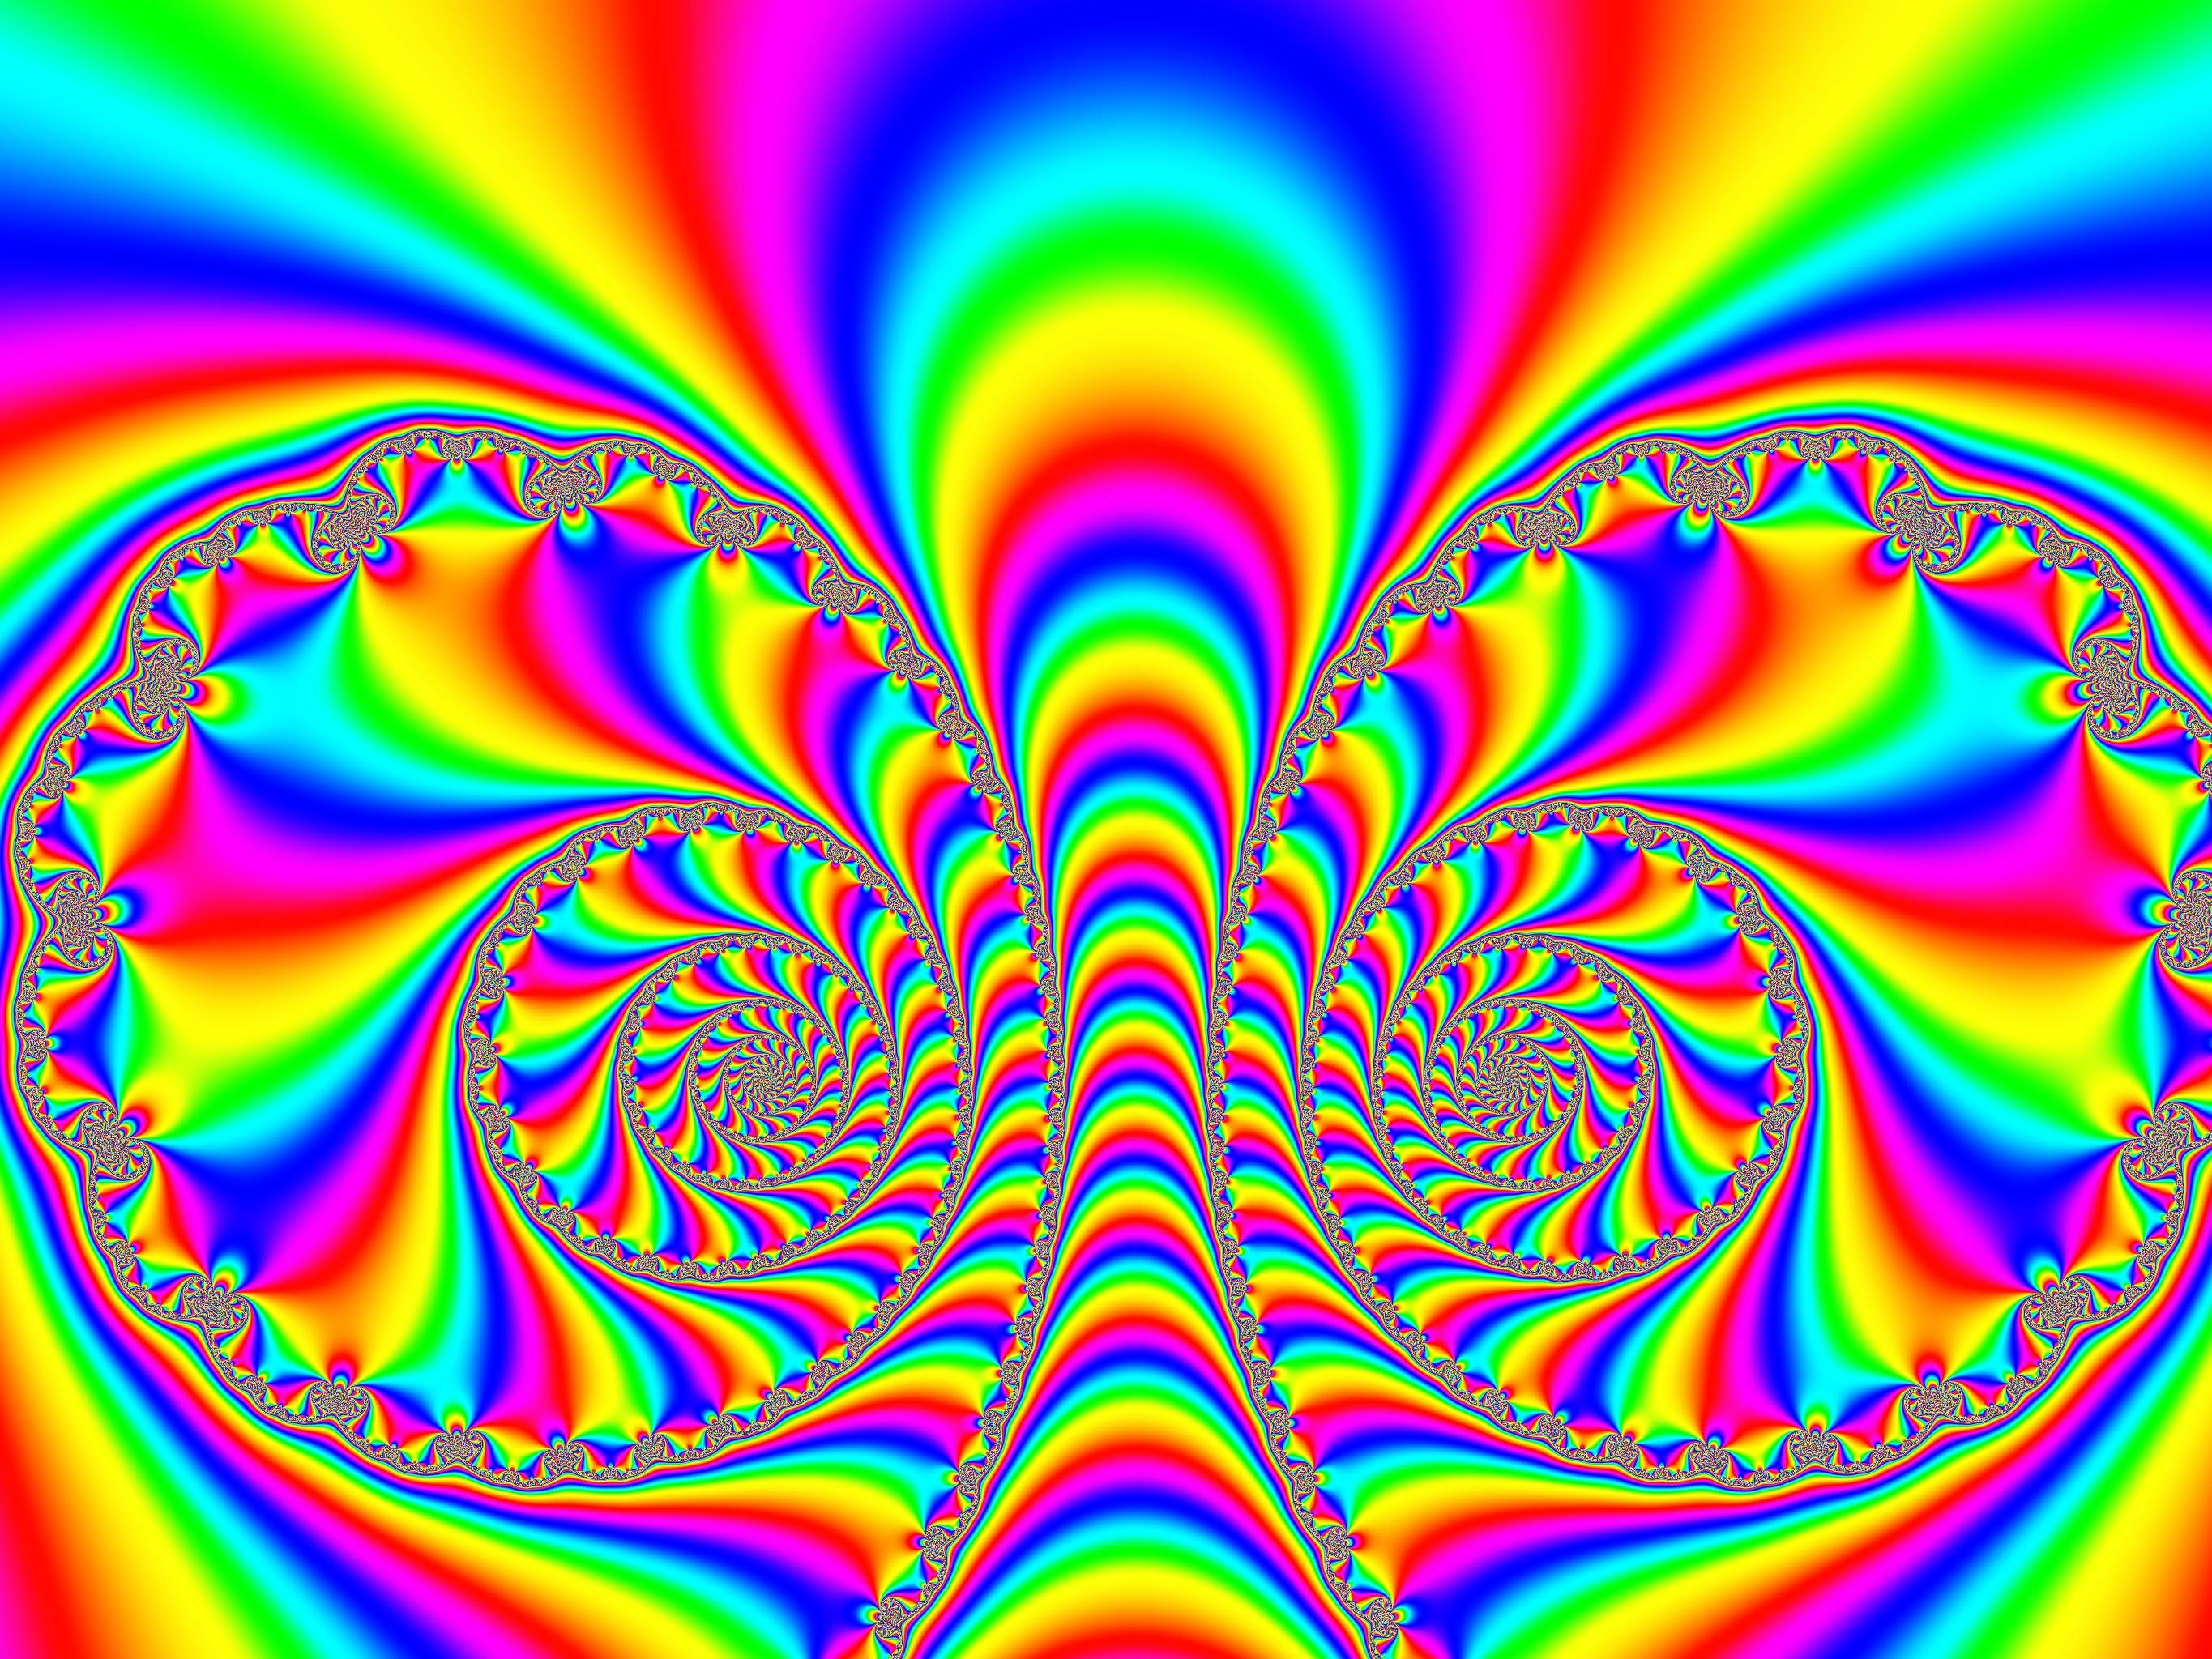 Res: 2730x2048, 500+) Trippy Wallpapers amp Psychedelic Backgrounds HD [NEW] - HD Wallpapers